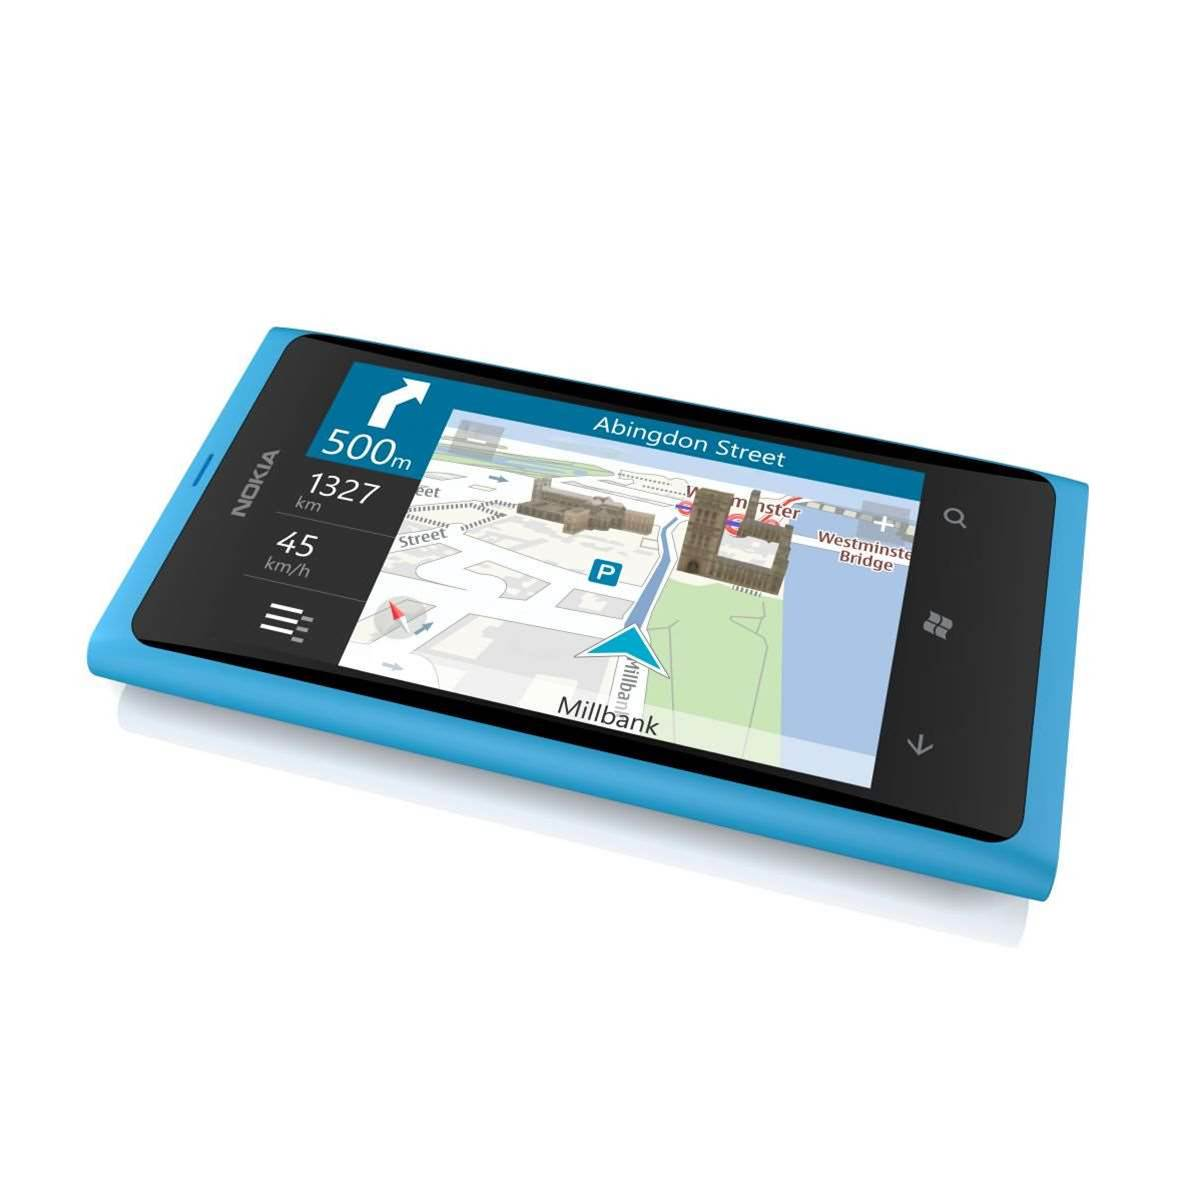 Windows phone 8 support ends in 2014